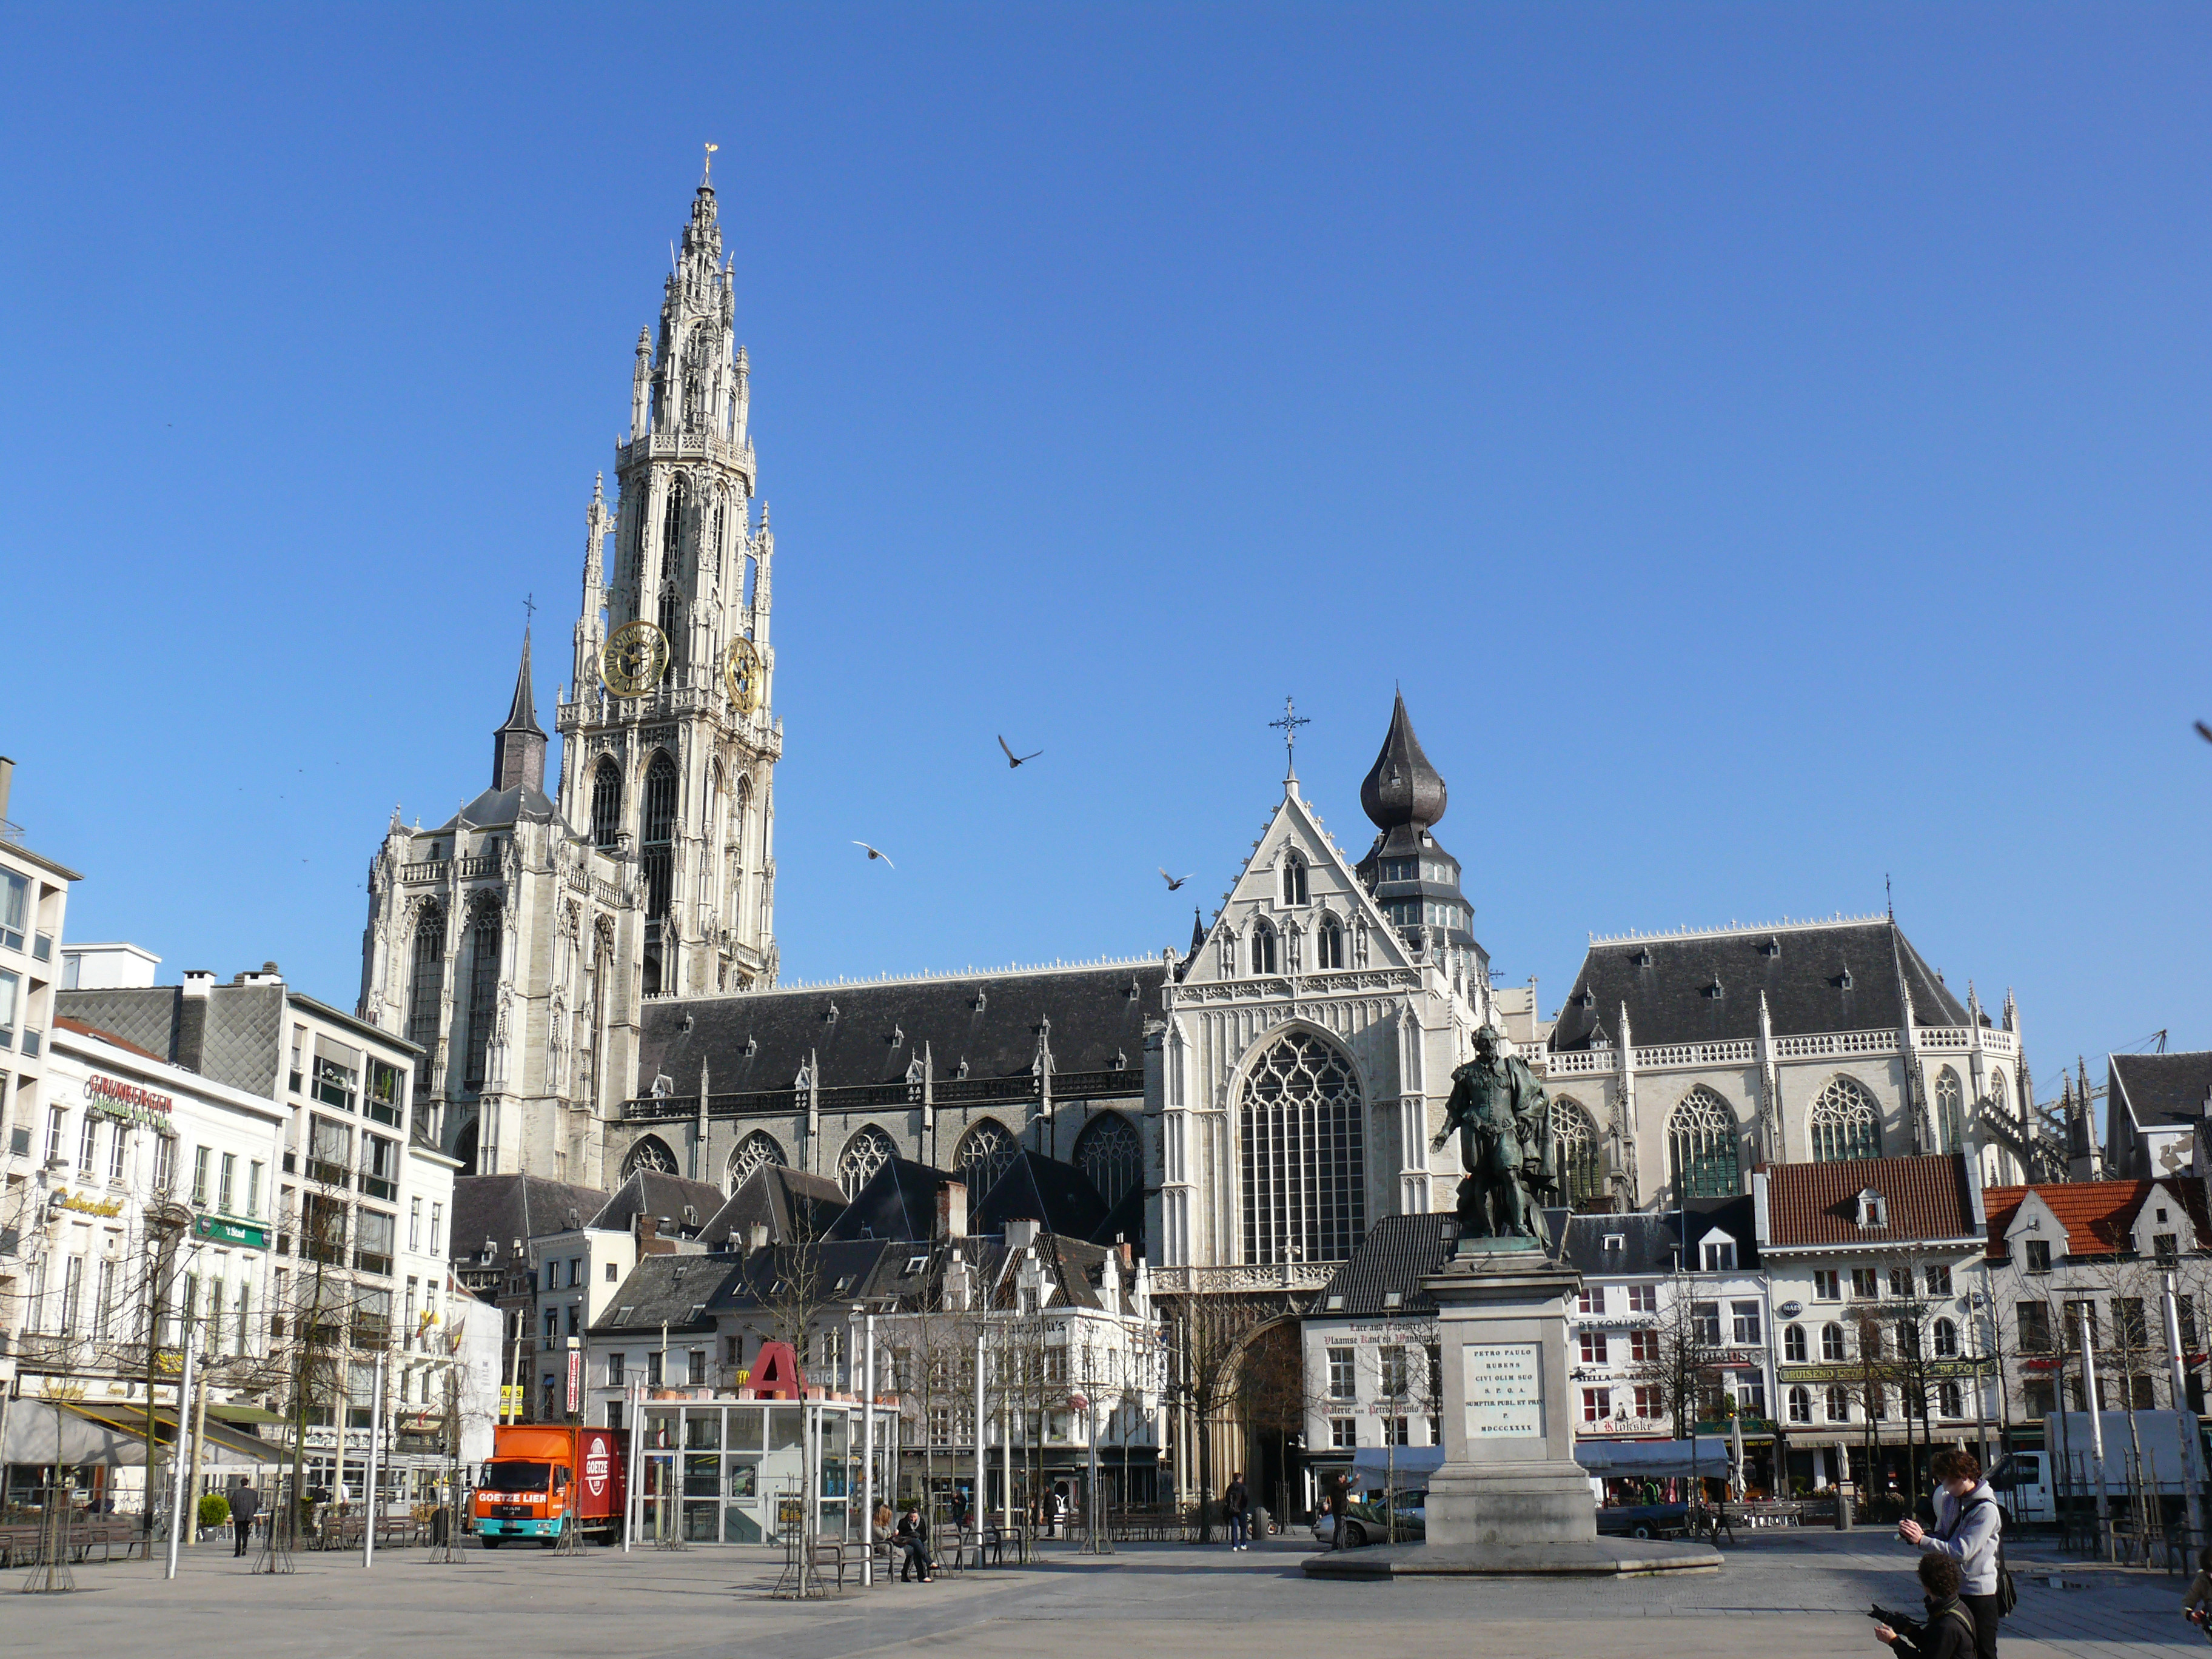 http://upload.wikimedia.org/wikipedia/commons/7/78/Antwerpen_kathedraal02.jpg